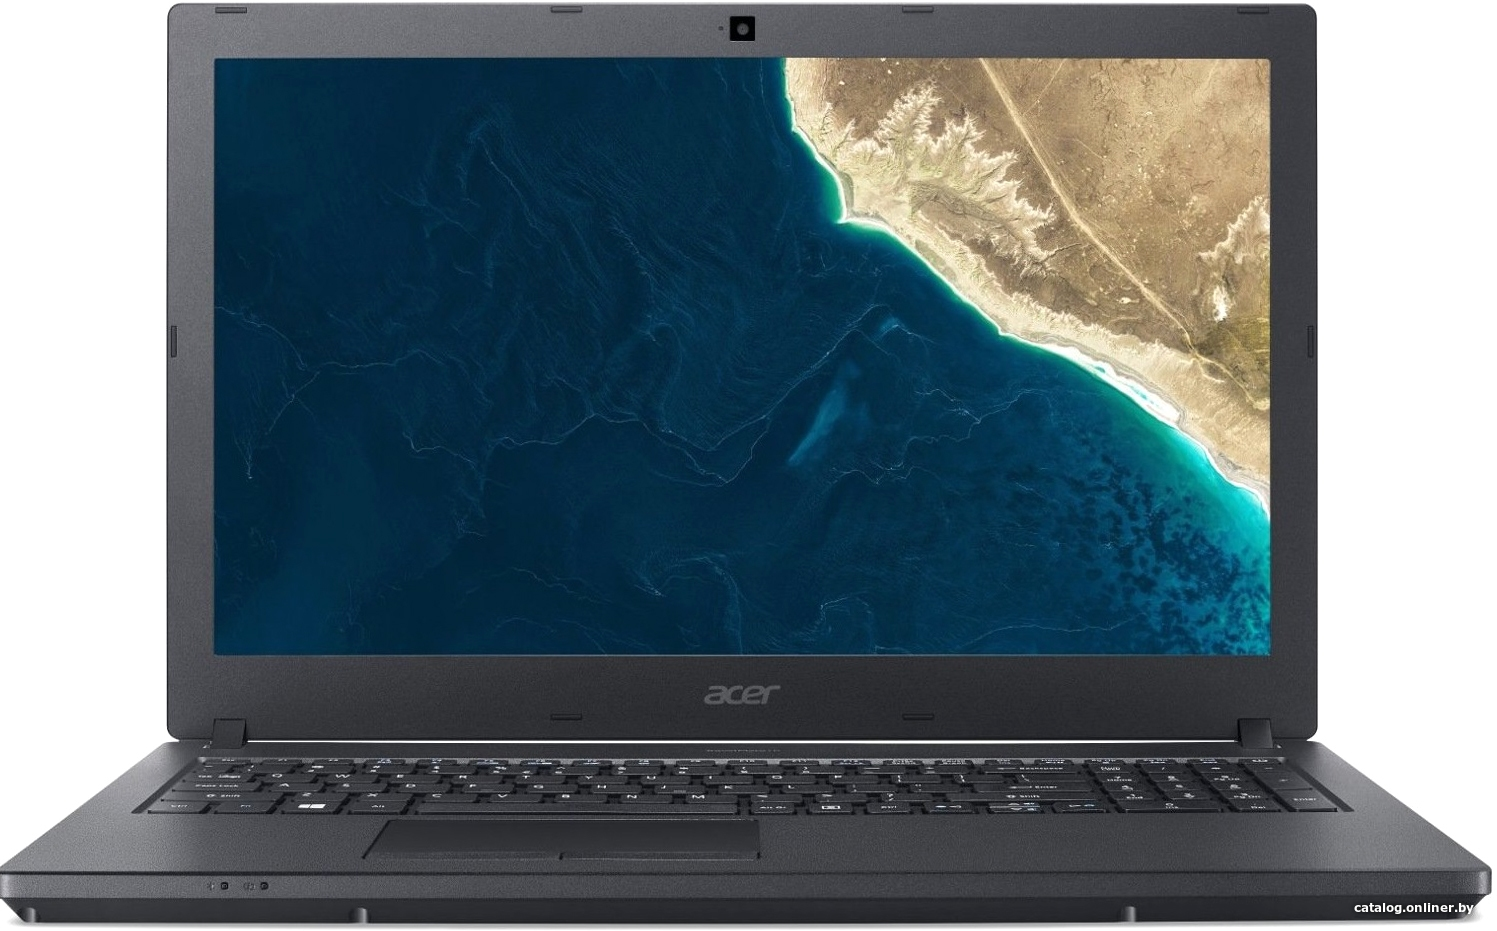 ACER TRAVELMATE 6594 NOTEBOOK INTEL CHIPSET DRIVERS UPDATE